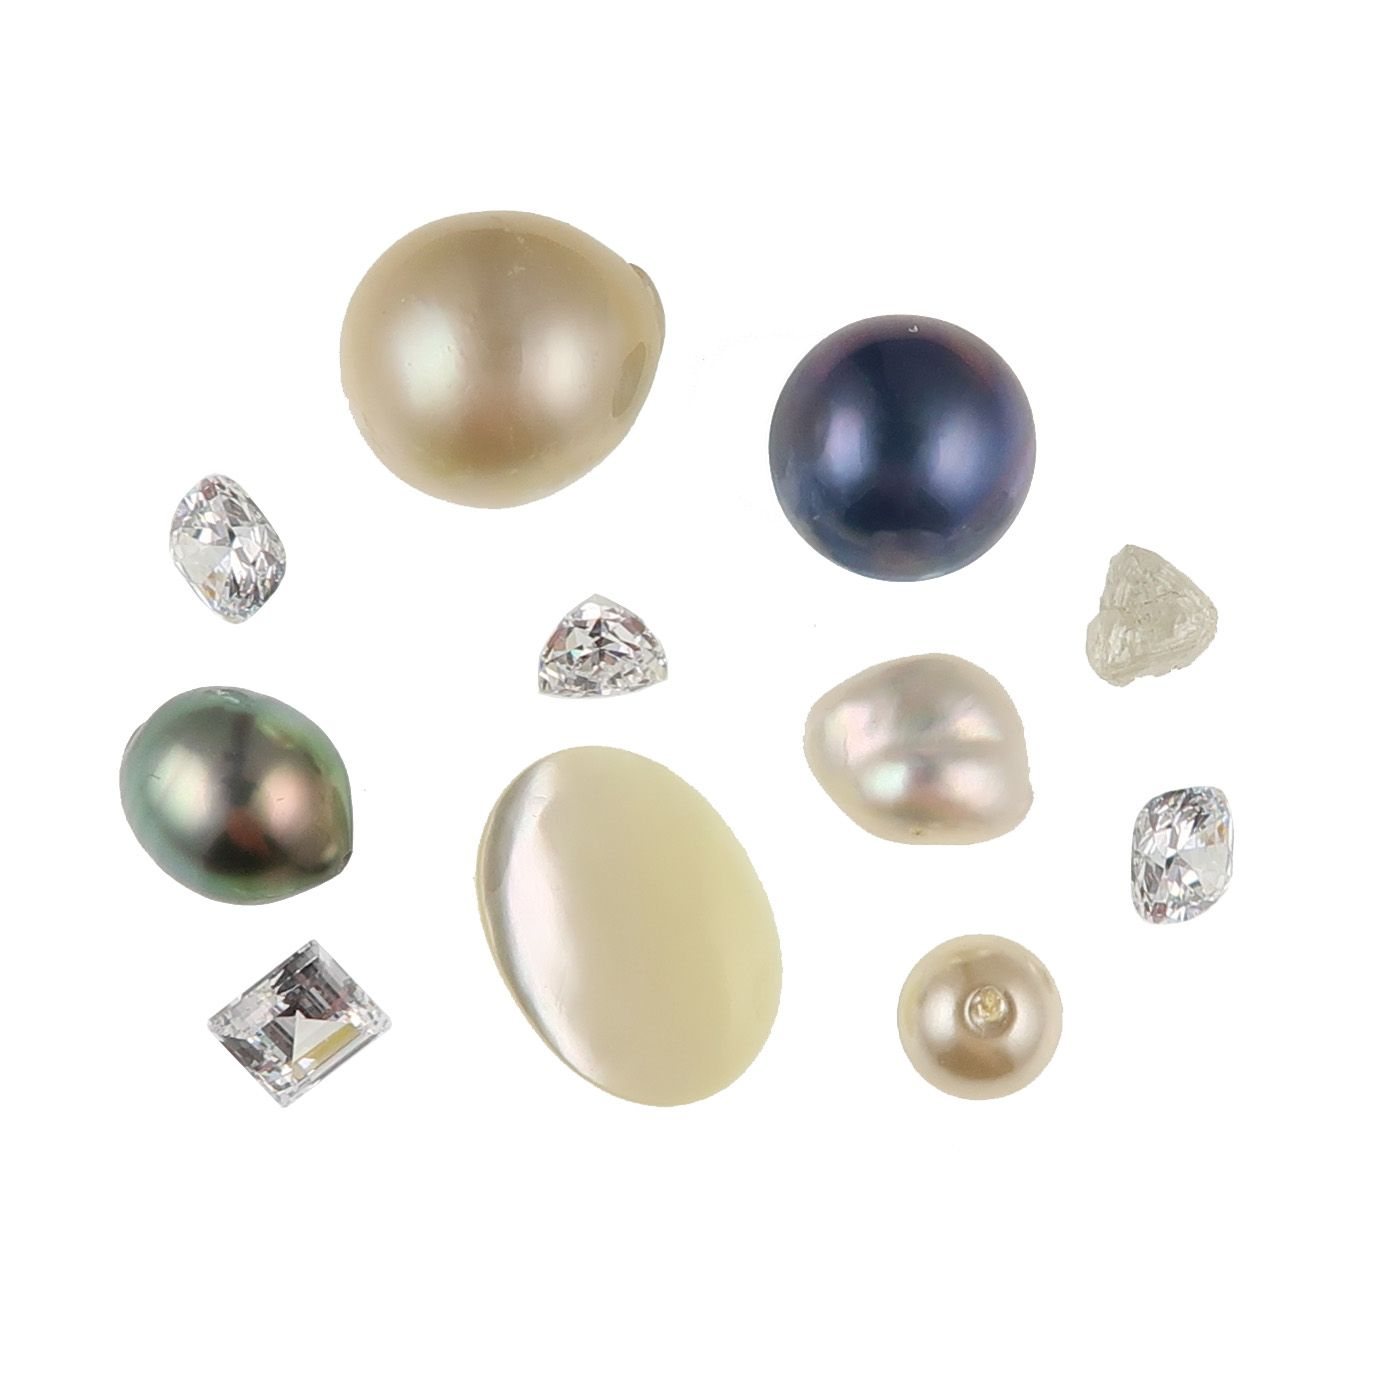 diamonds and pearls gemmology course